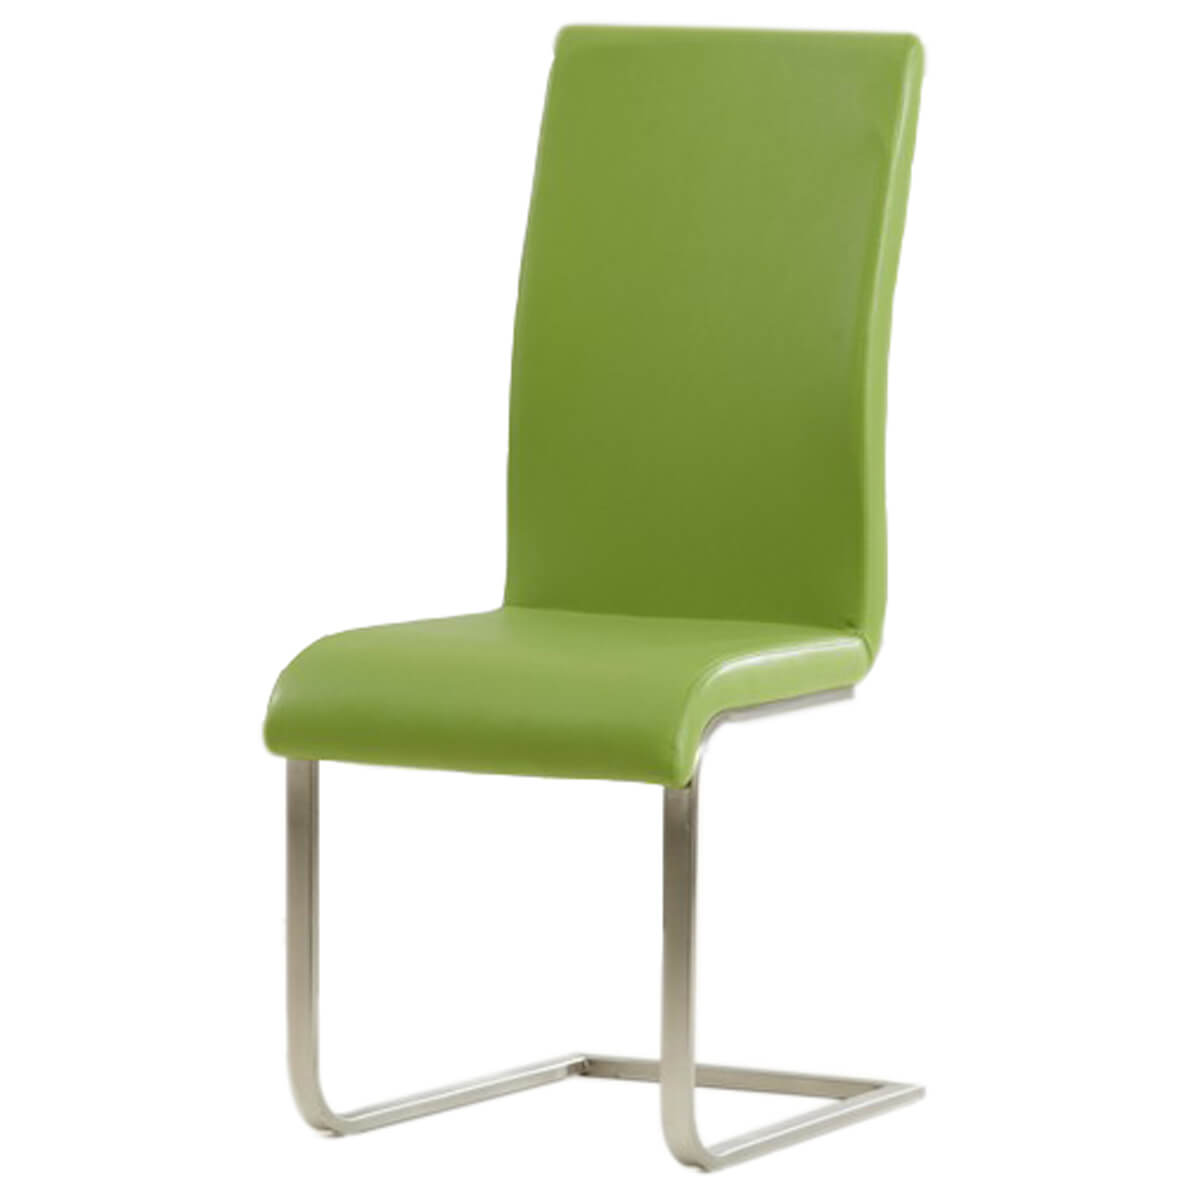 Malibu Cantilever Dining Chair Green Faux Leather